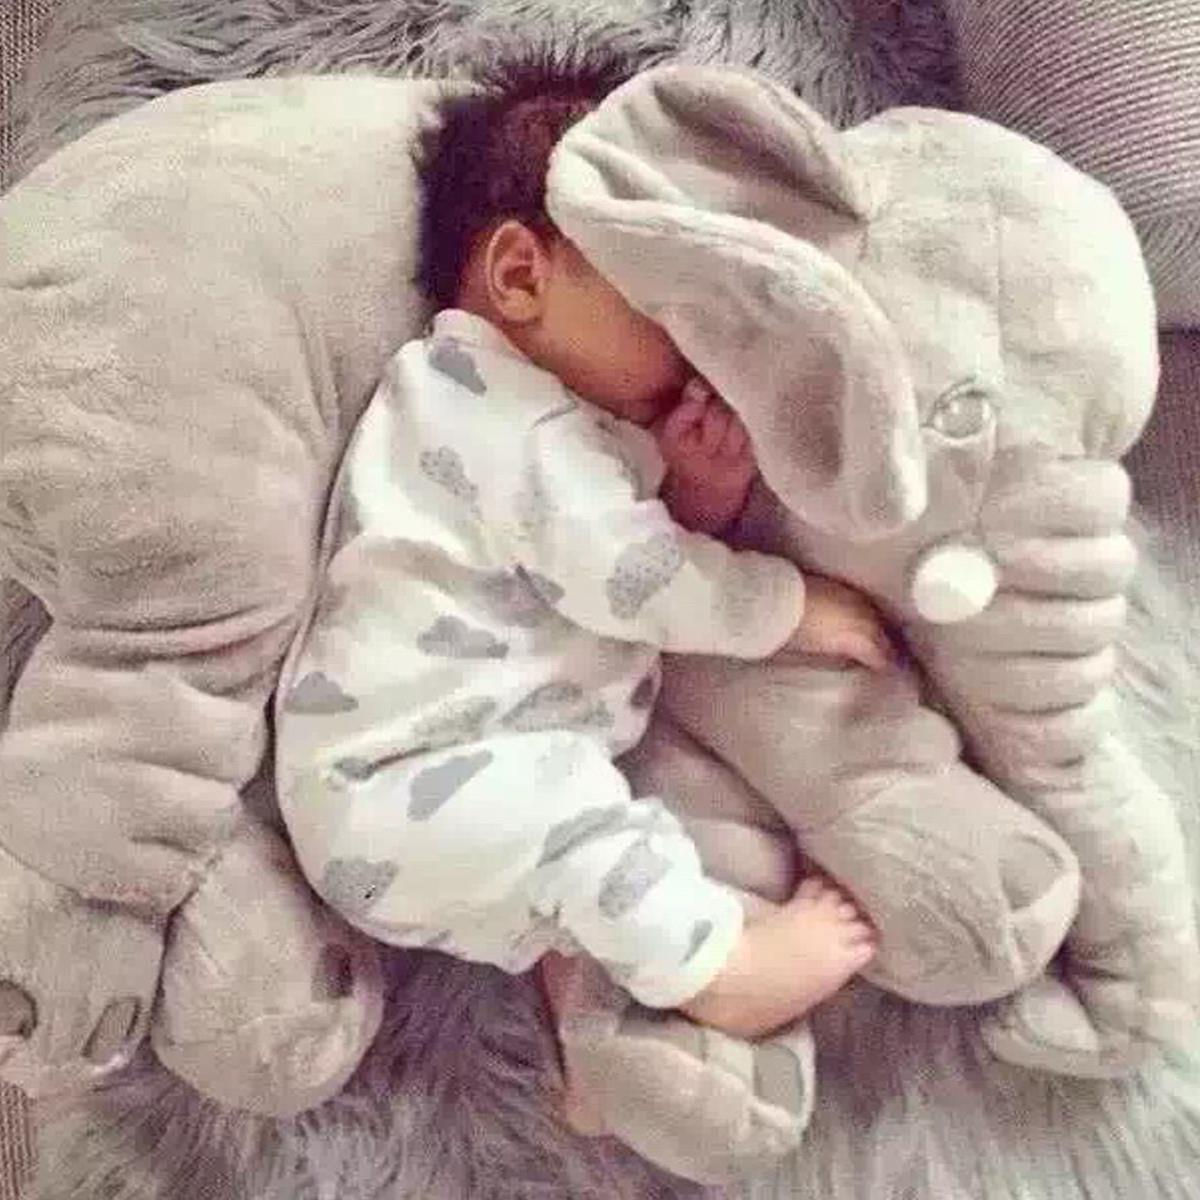 Baby Kids Plush Elephant Sleep Pillow Infant Soft For Sleeping Lumbar Cushion Pillow Toys Baby Nap Sleep Bedding bookfong drop shipping 40cm infant soft appease elephant pillow baby sleep toys room decoration plush toys for kids